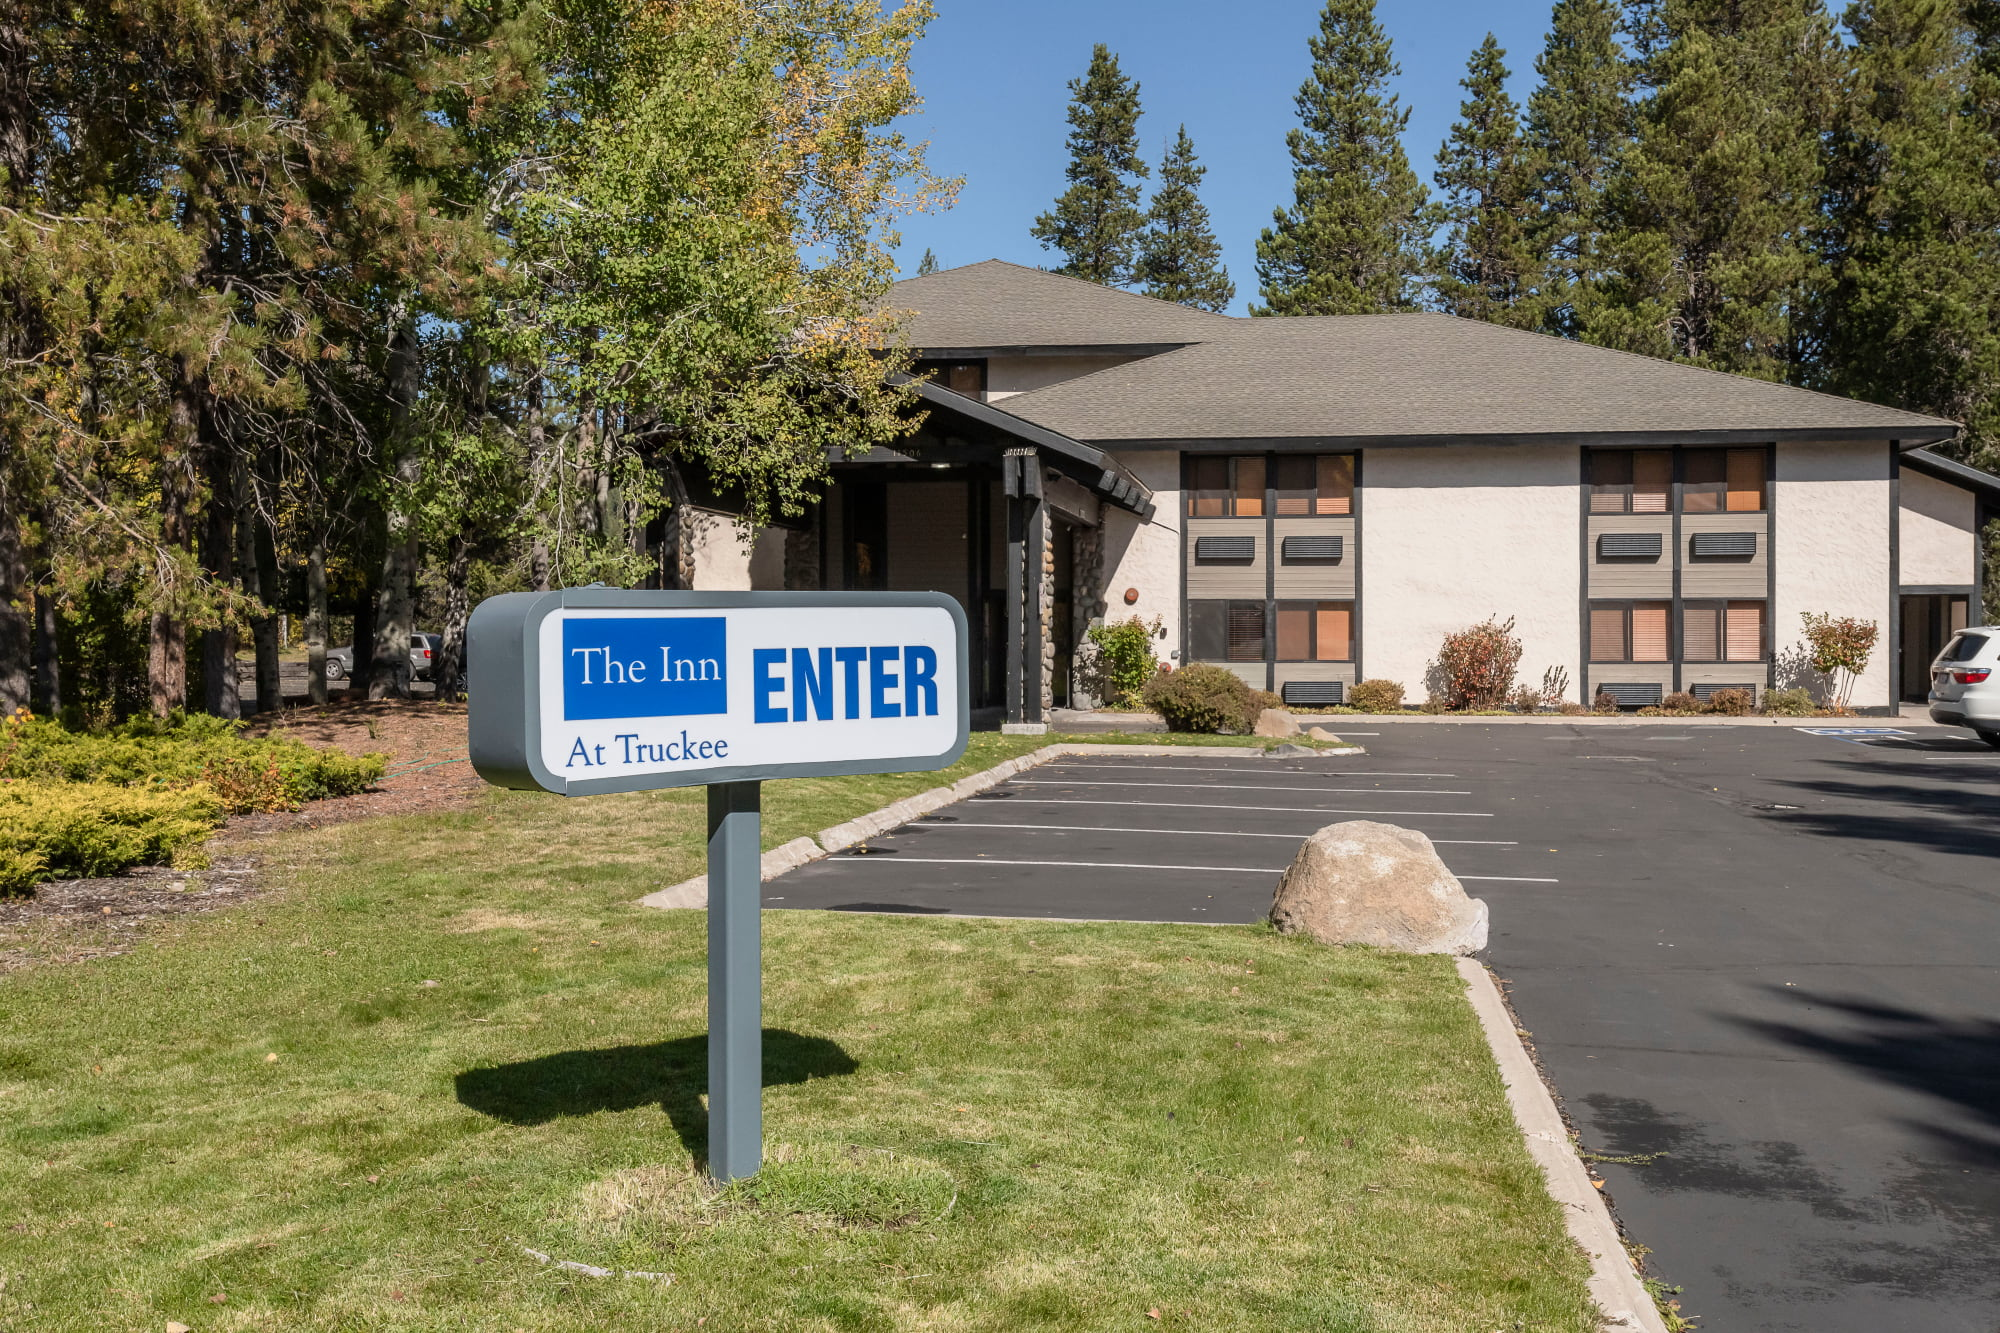 Entrance view of The Inn at Truckee.